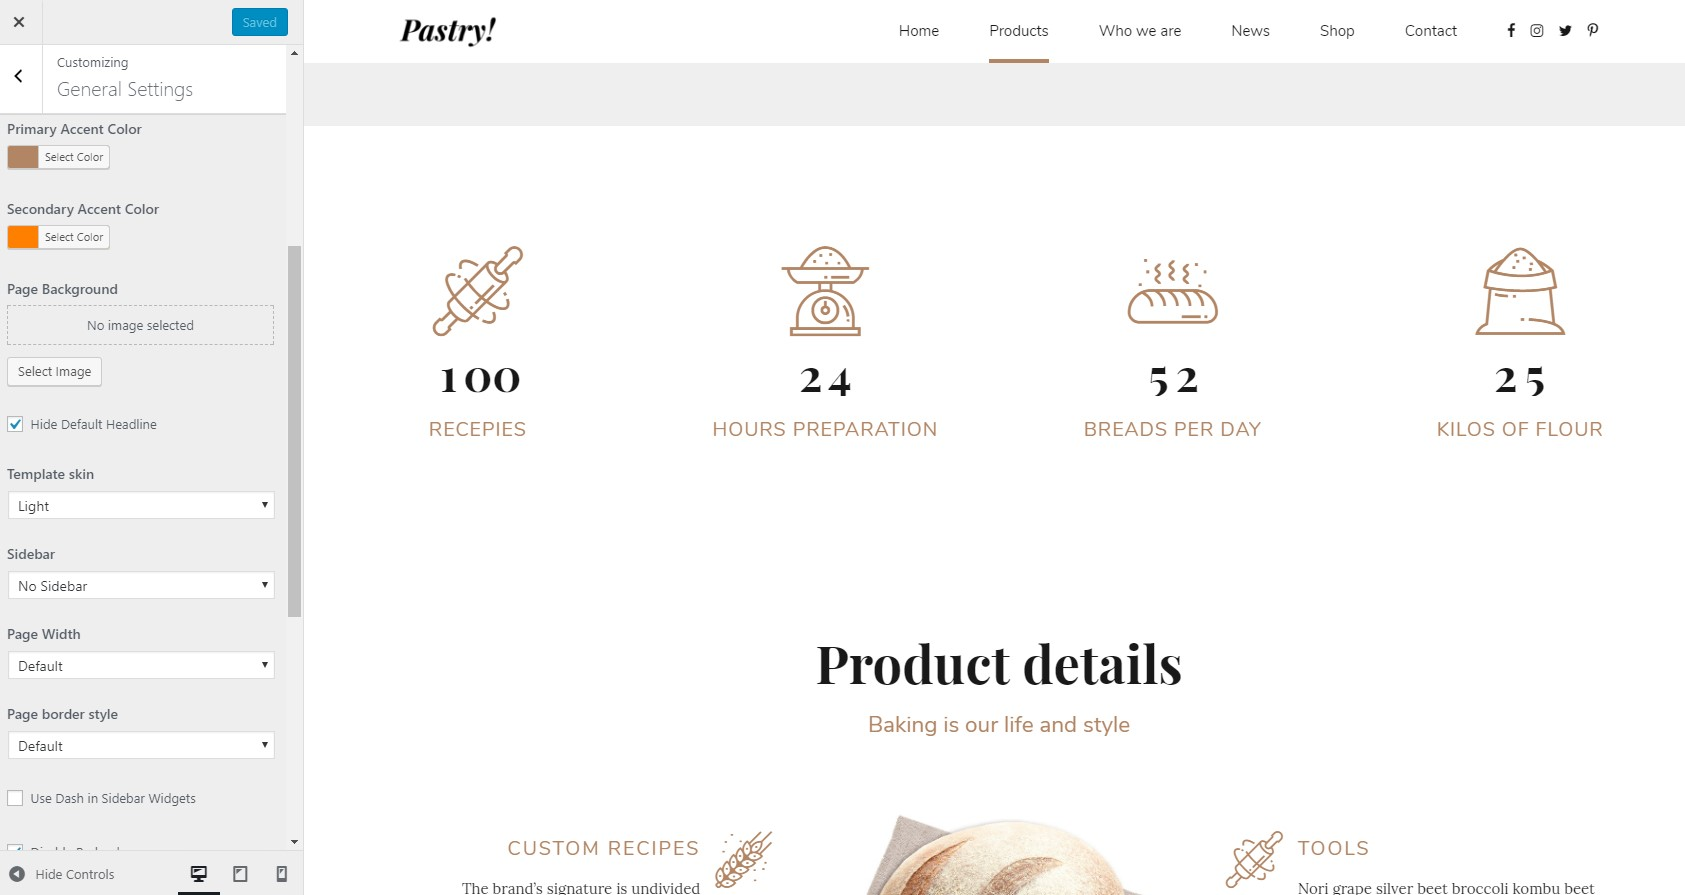 http://documentation.bold-themes.com/pastry-love/wp-content/uploads/sites/22/2017/08/accent-color.jpg